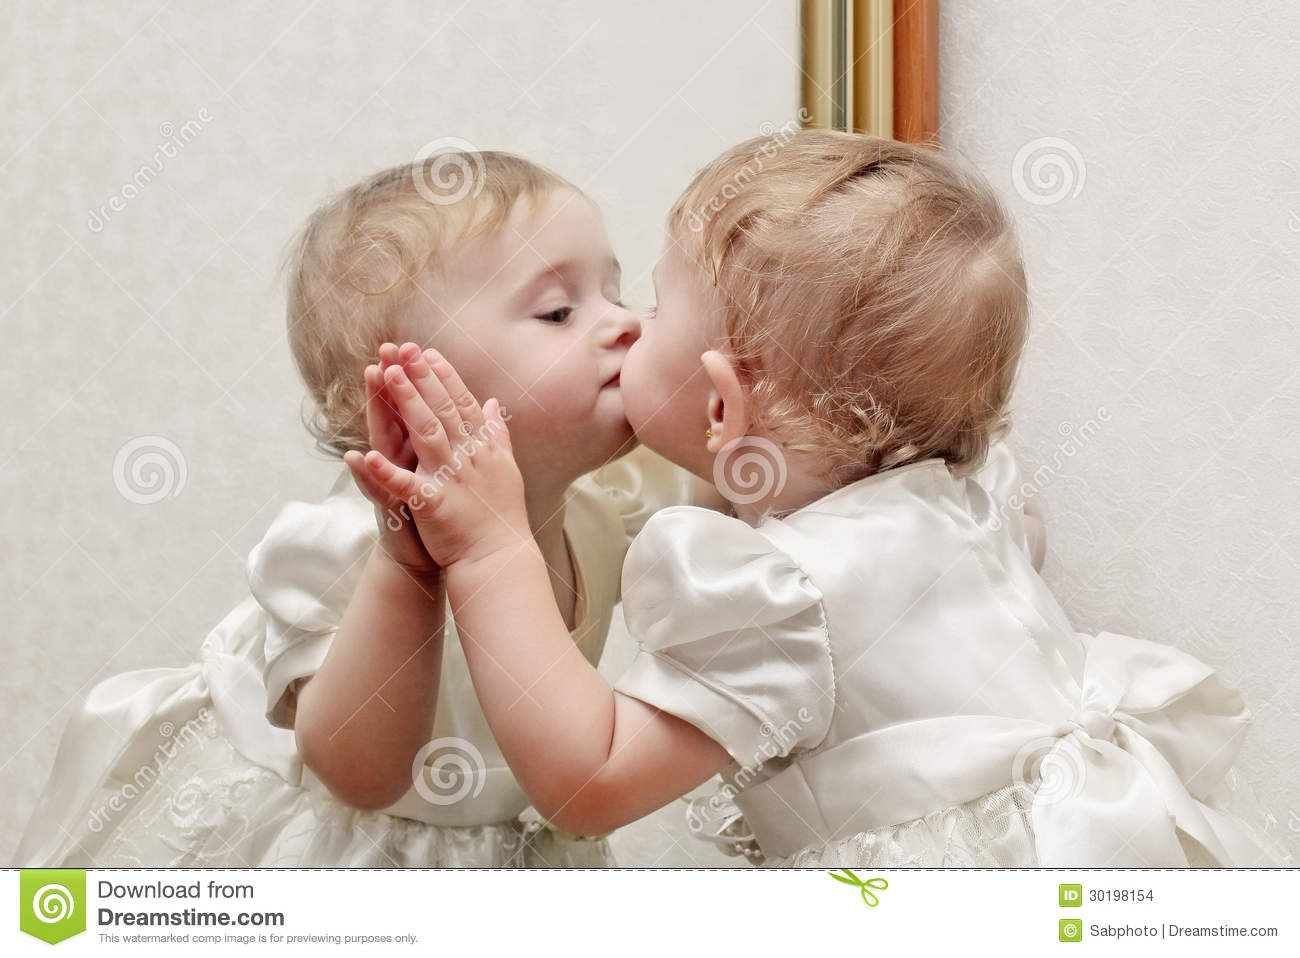 Cute Wallpapers Of All Kind Of Animals Baby Kissing A Mirror Stock Images Image 30198154